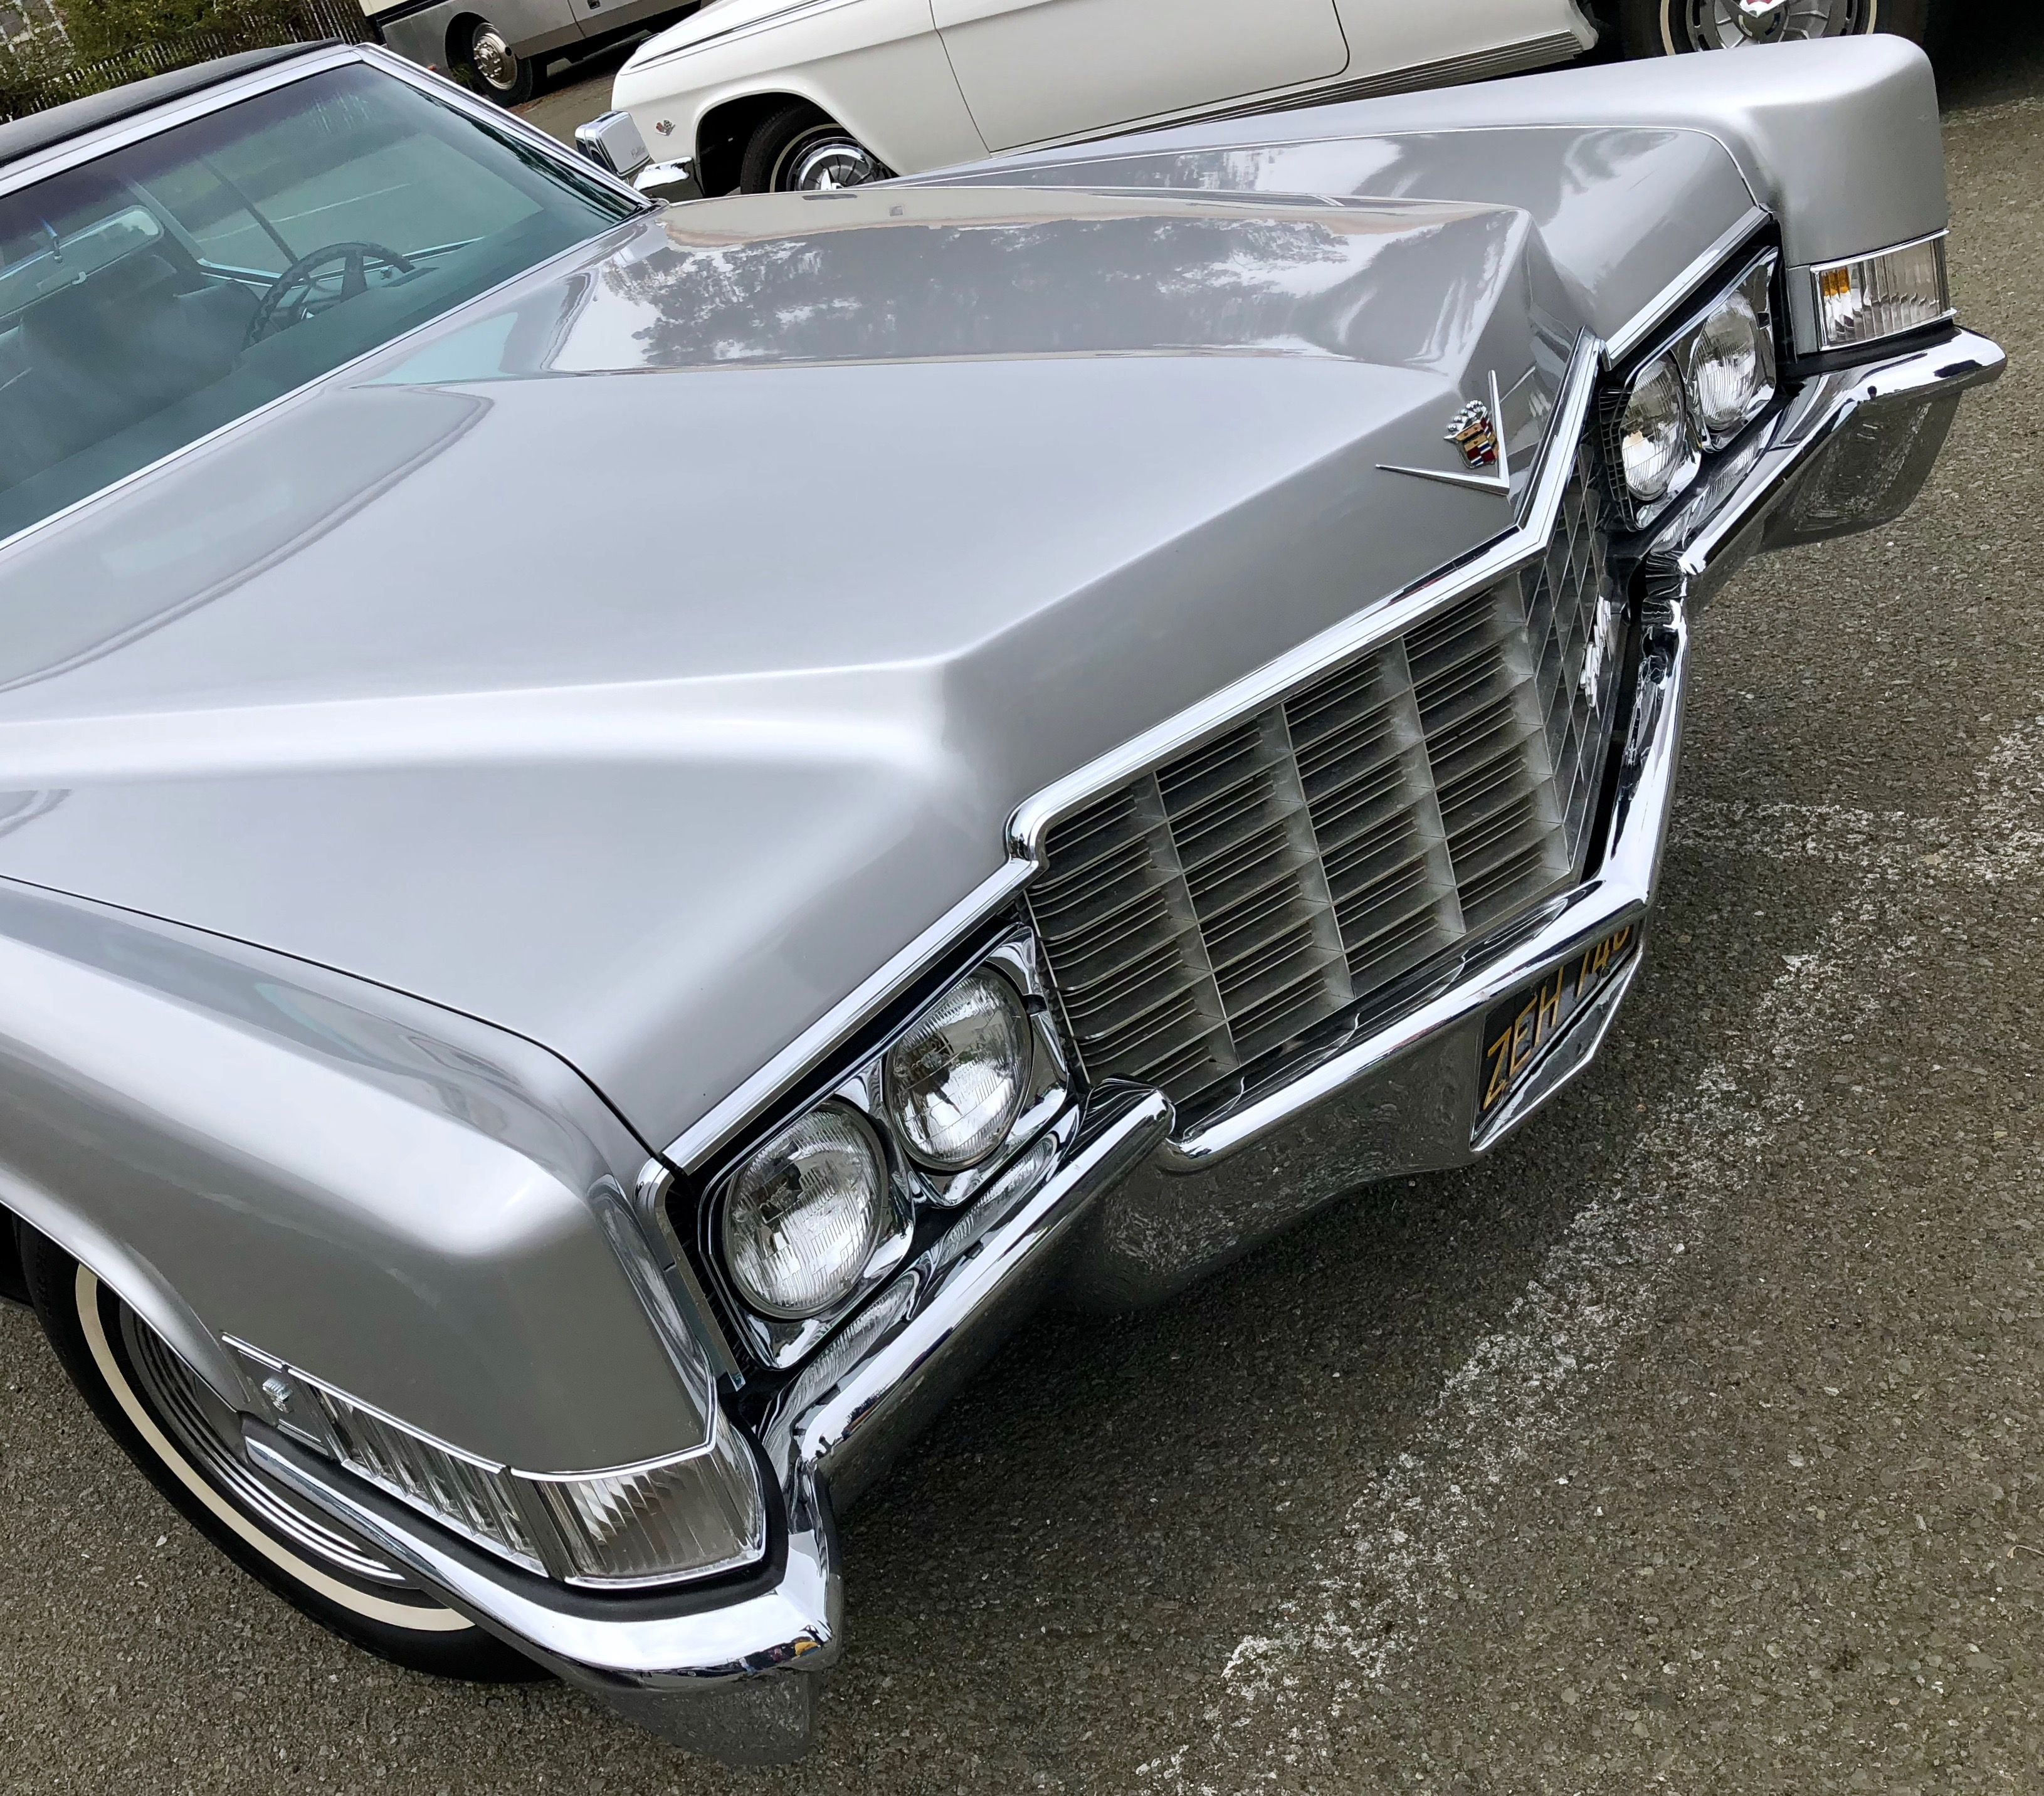 c15a5f0bb41324e61d50fc9c271d868c Cool Review About 1968 Cadillac